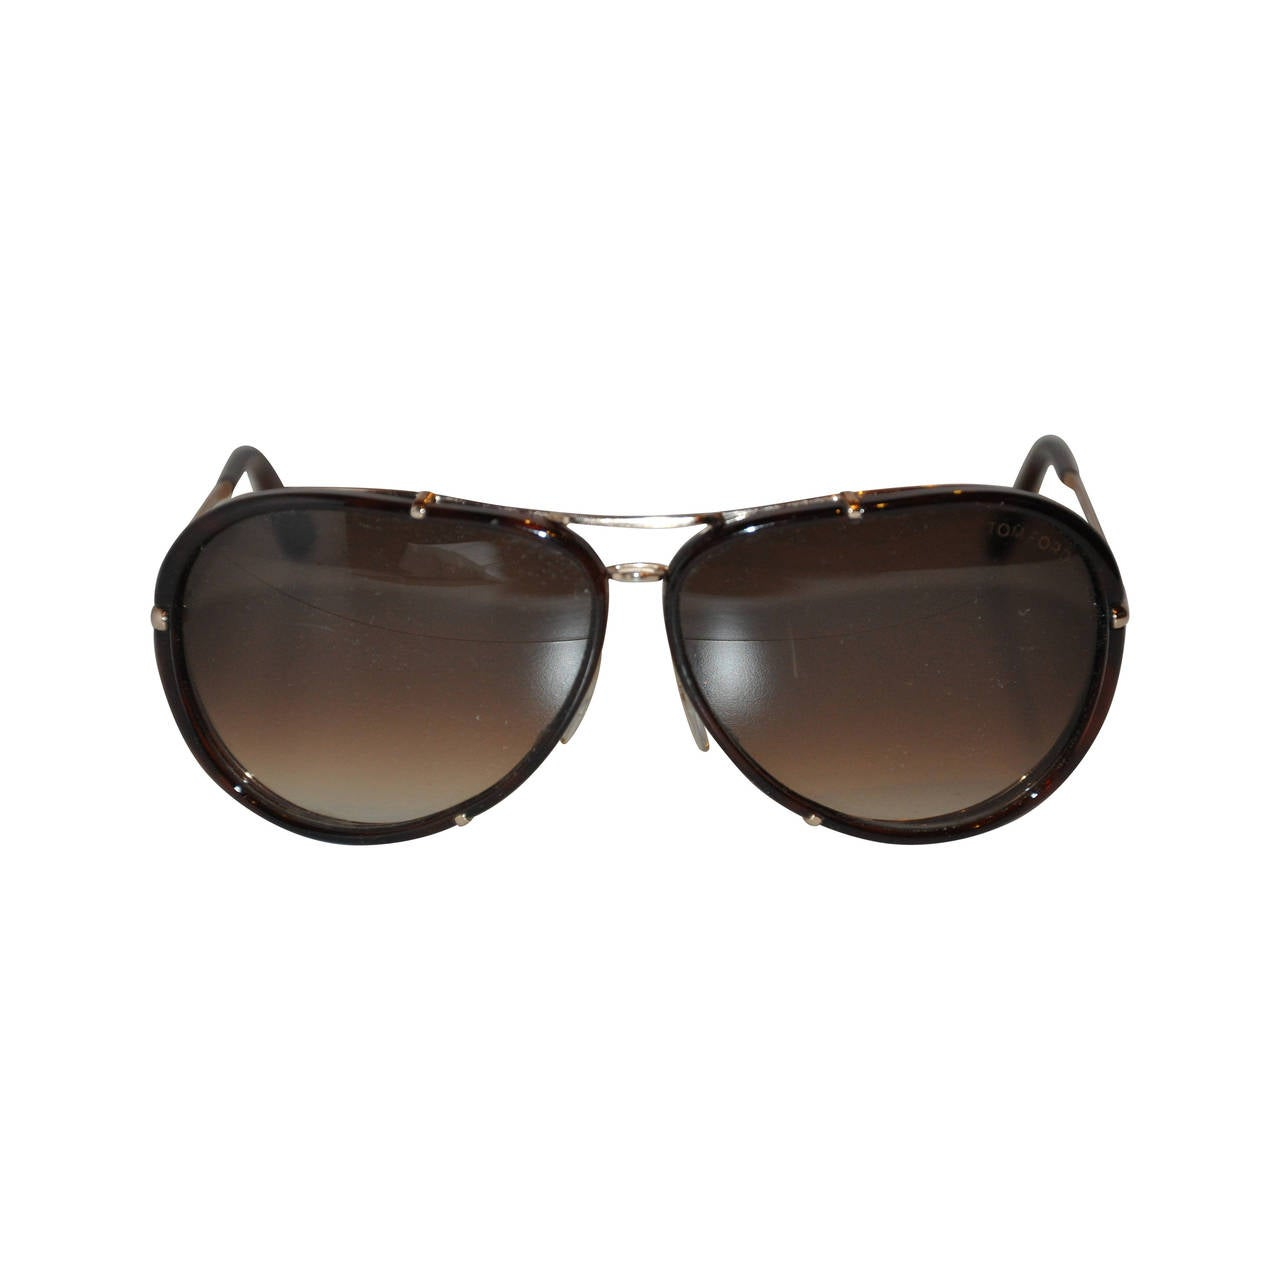 Tom Ford Brown Lucite with Gold Hardware Frame and Accent Sunglasses